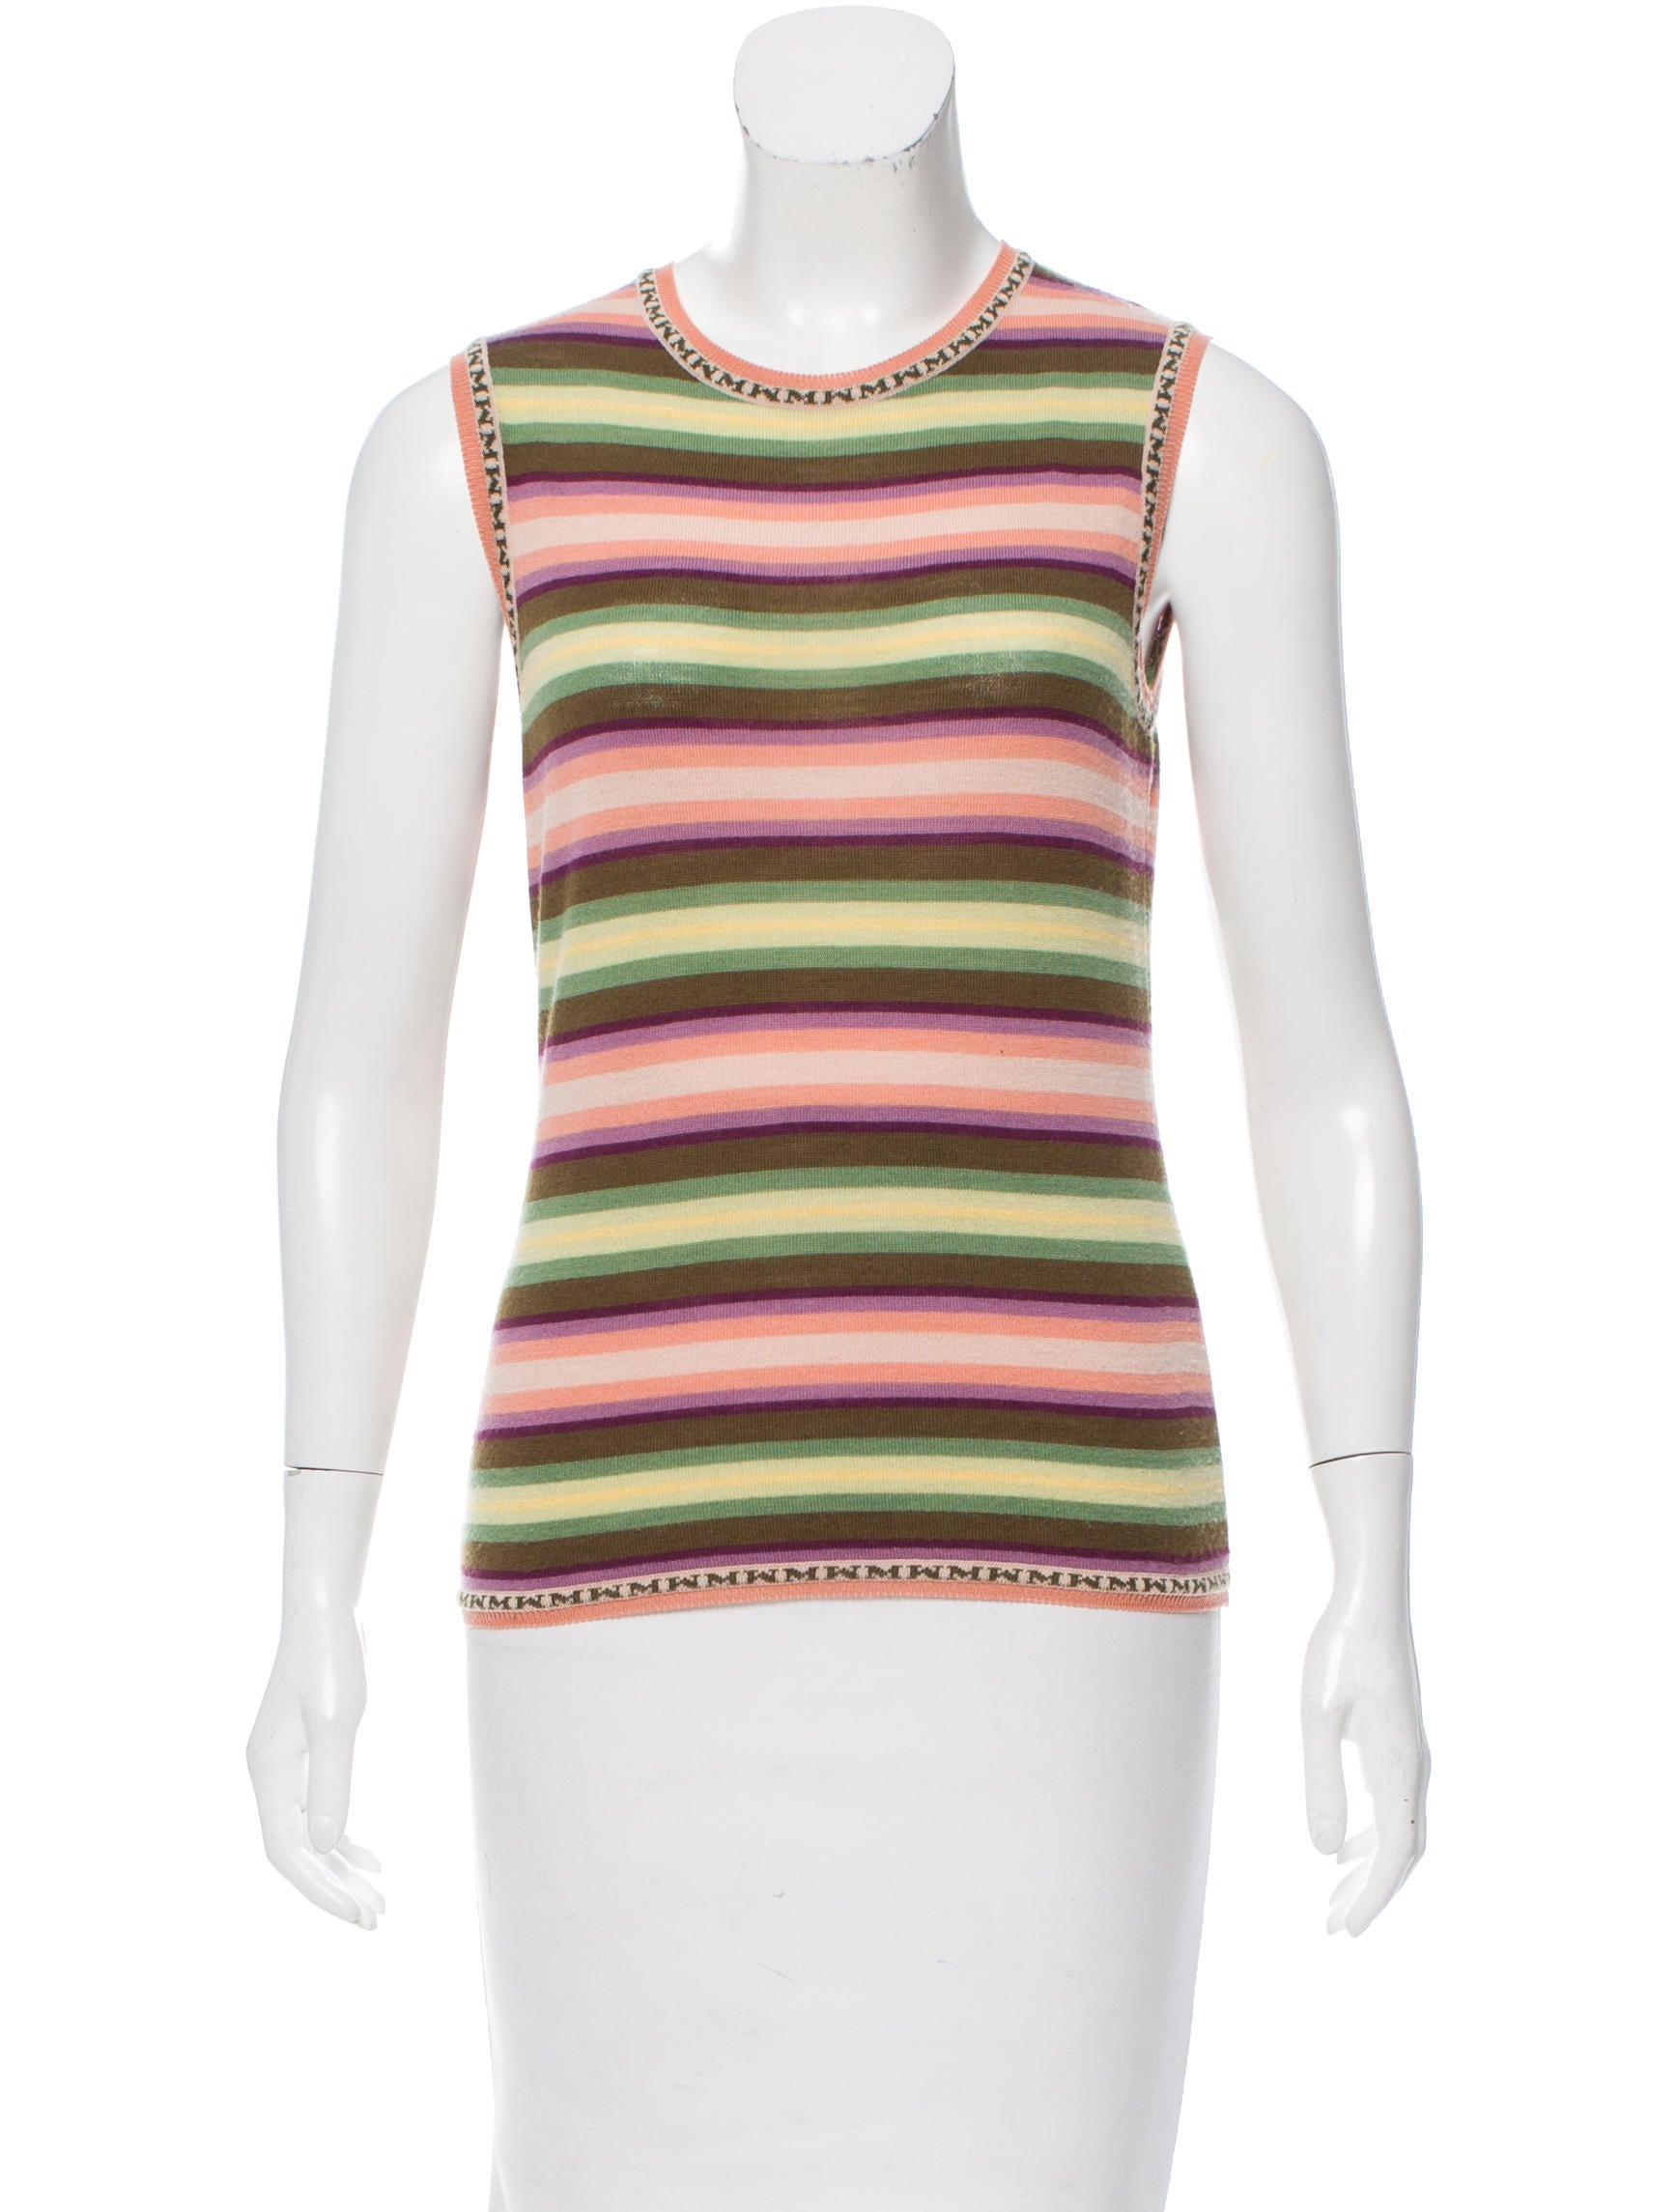 Missoni wool sleeveless top clothing mis42449 the for Best wool shirt jackets